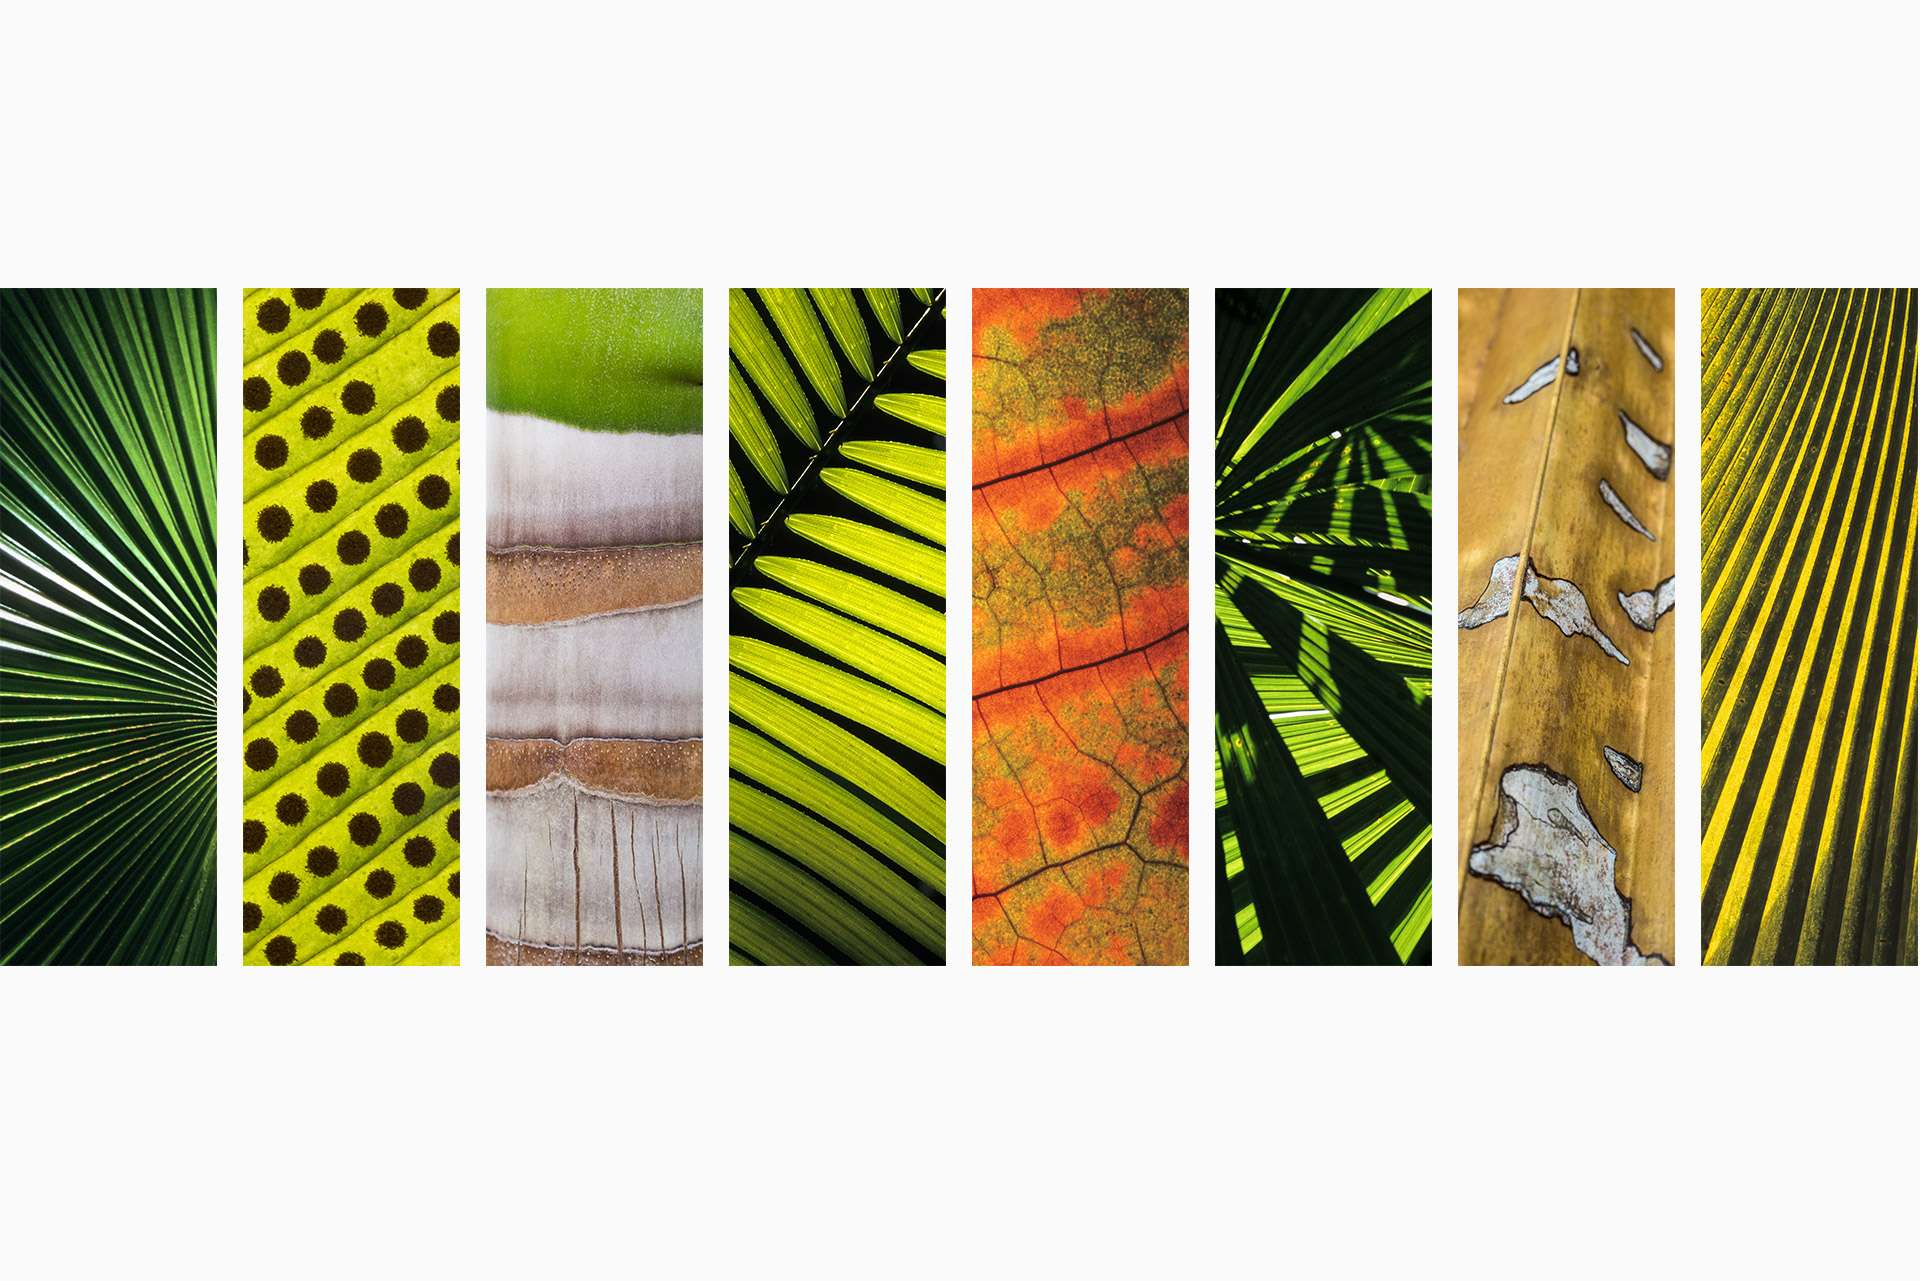 Gilles Martin's photo-montage from Tropical rainforest